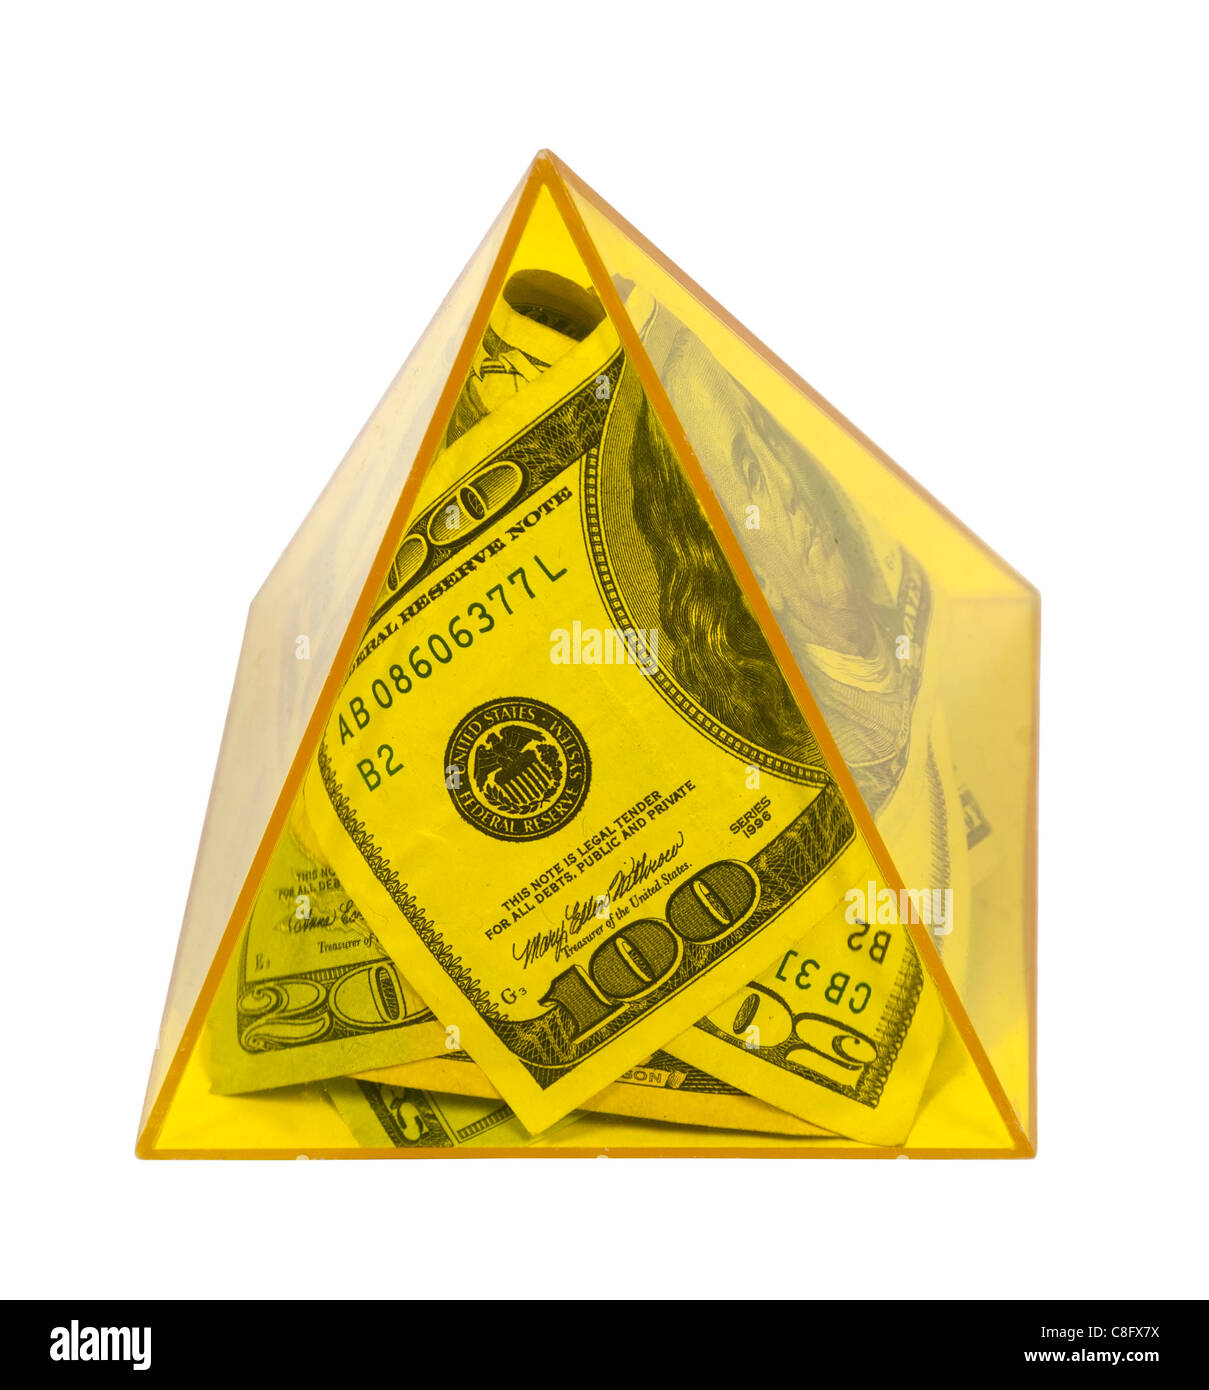 Money stuffed into a large yellow pyramid in a symbol of power - path included - Stock Image